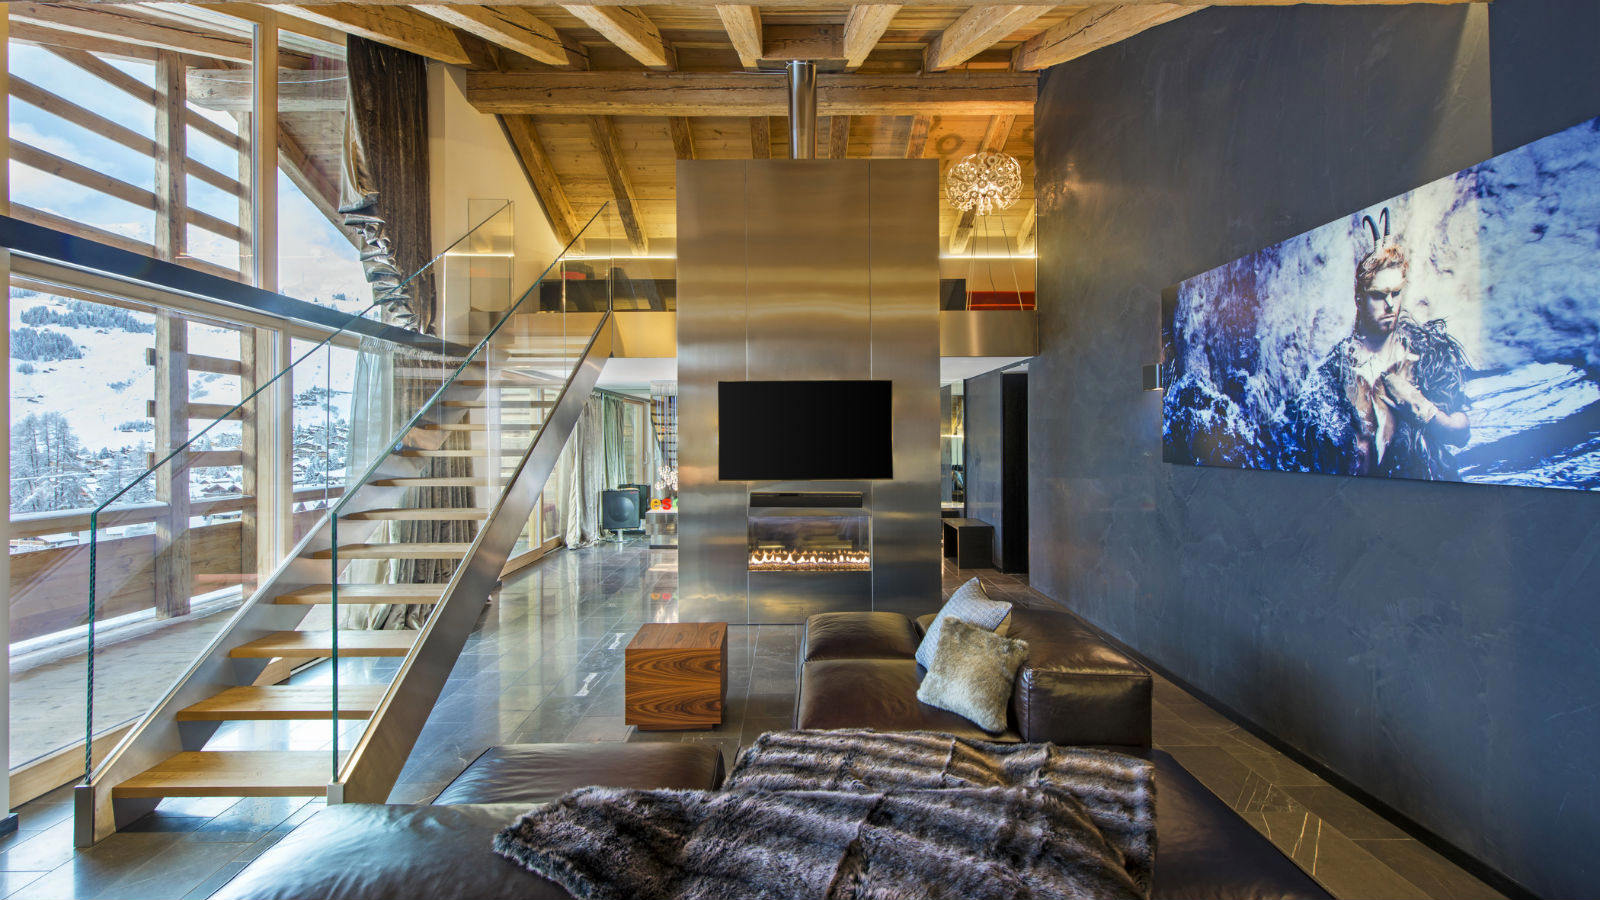 W hotel verbier luxury verbier for Hotel design schweiz